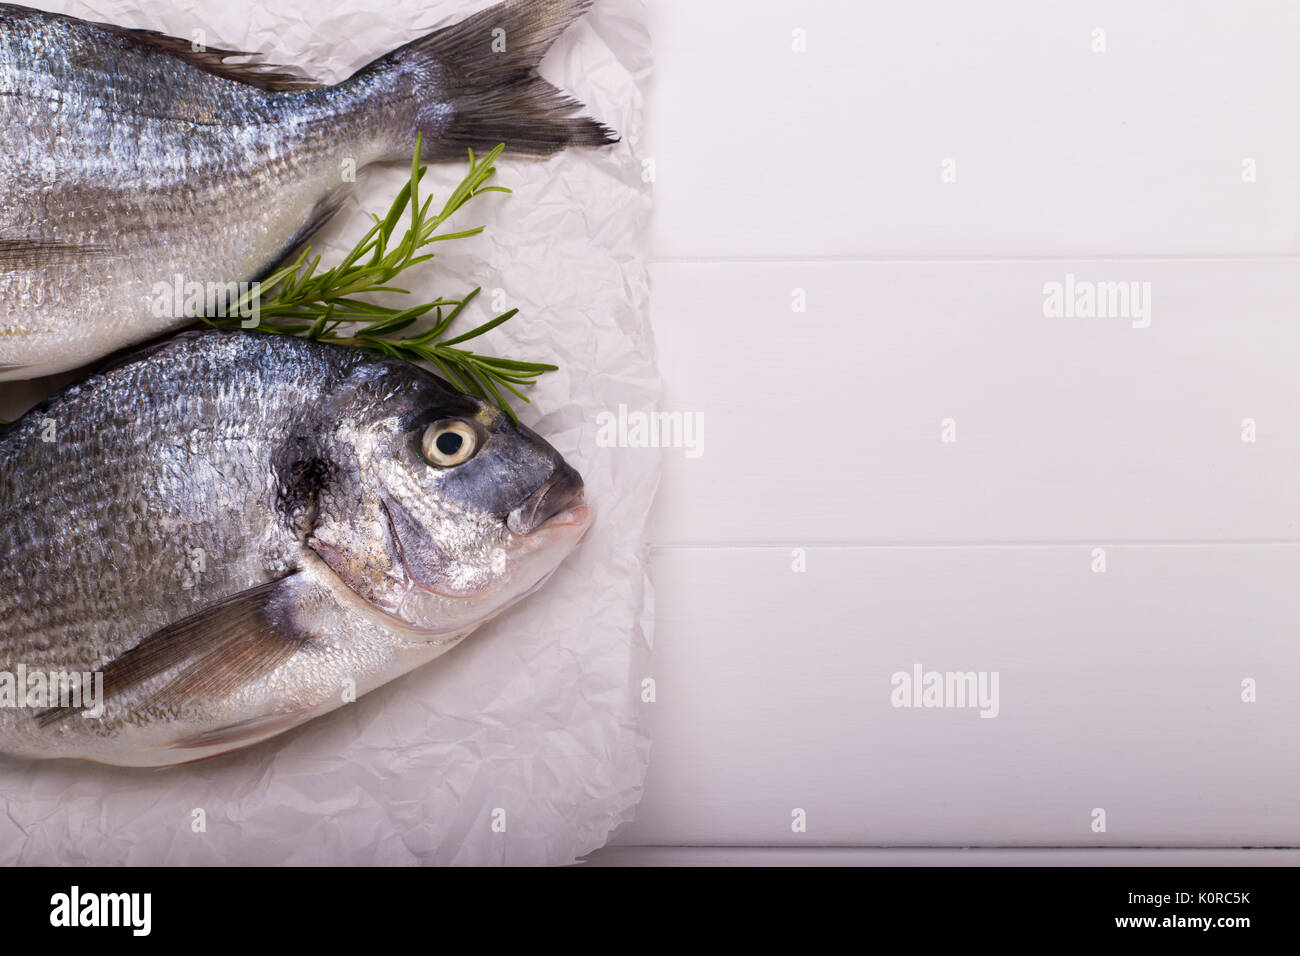 Fresh raw sea bream fish with lemon slices, salt, rosemary and olive oil on white wooden table.Healthy food concept, top view, copy space - Stock Image